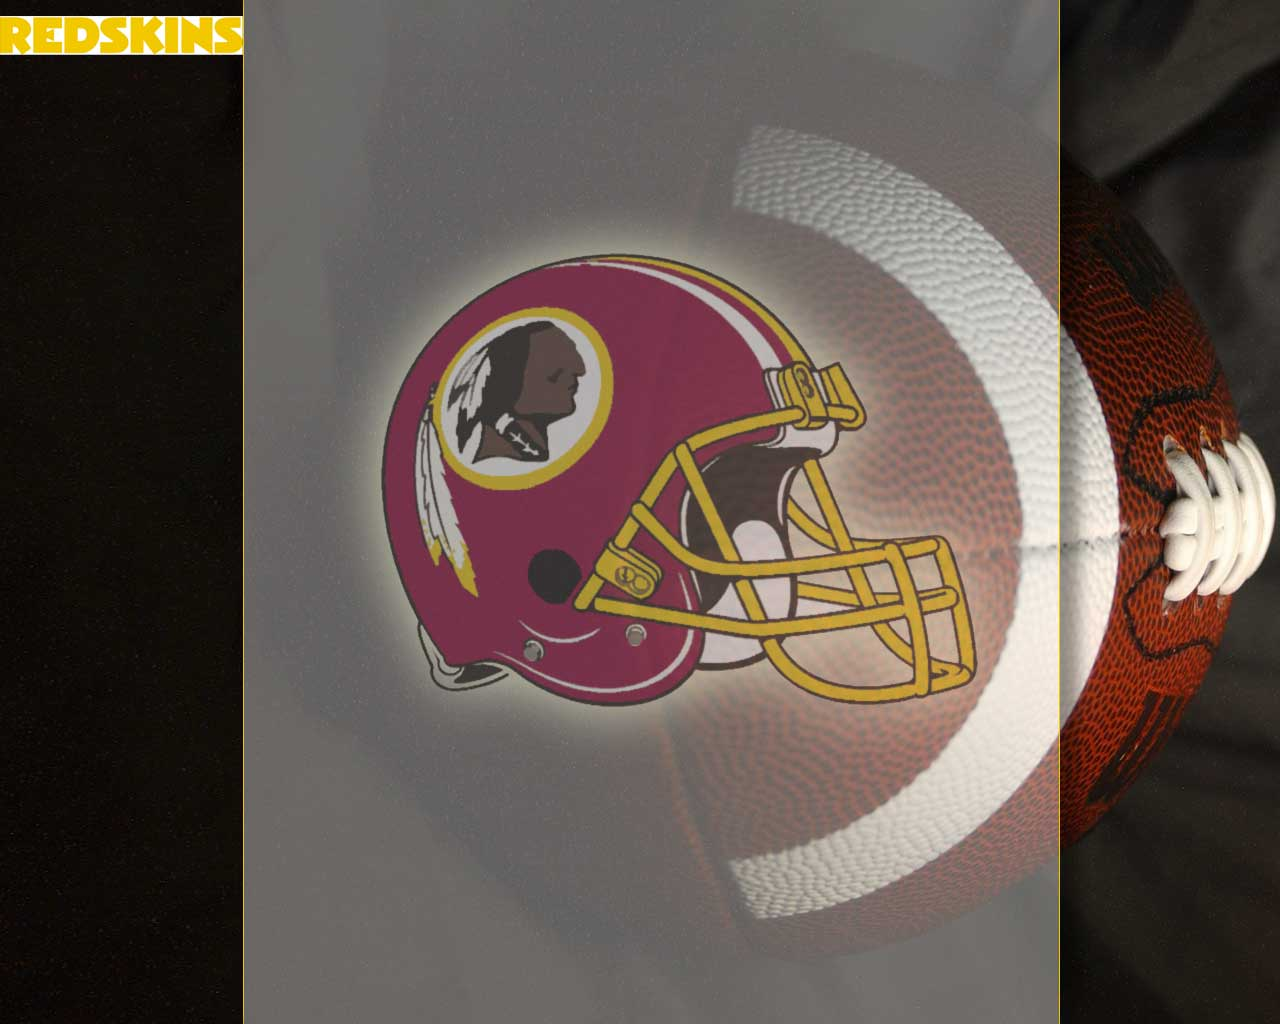 Washington Redskins desktop image Washington Redskins wallpapers 1280x1024